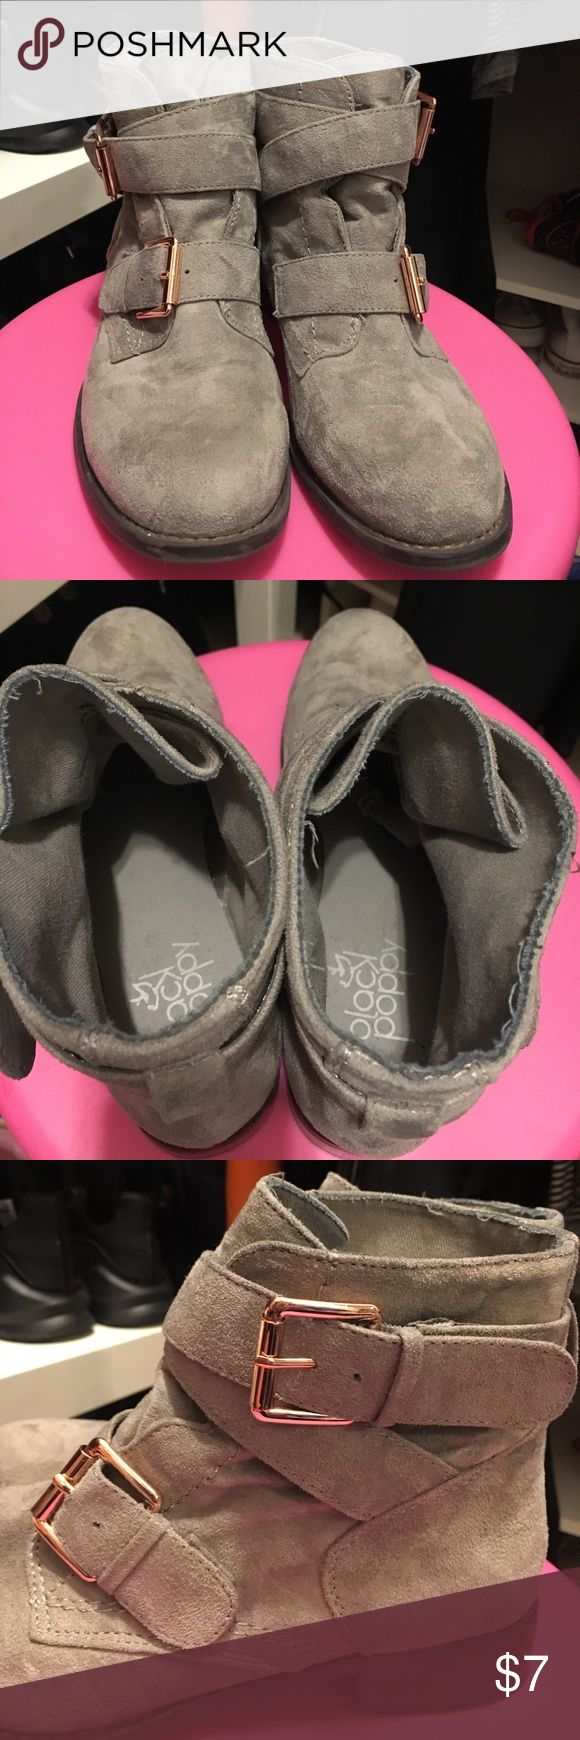 Grey Suede Booties super cute booties! 💕💕 PacSun Shoes Ankle Boots & Booties